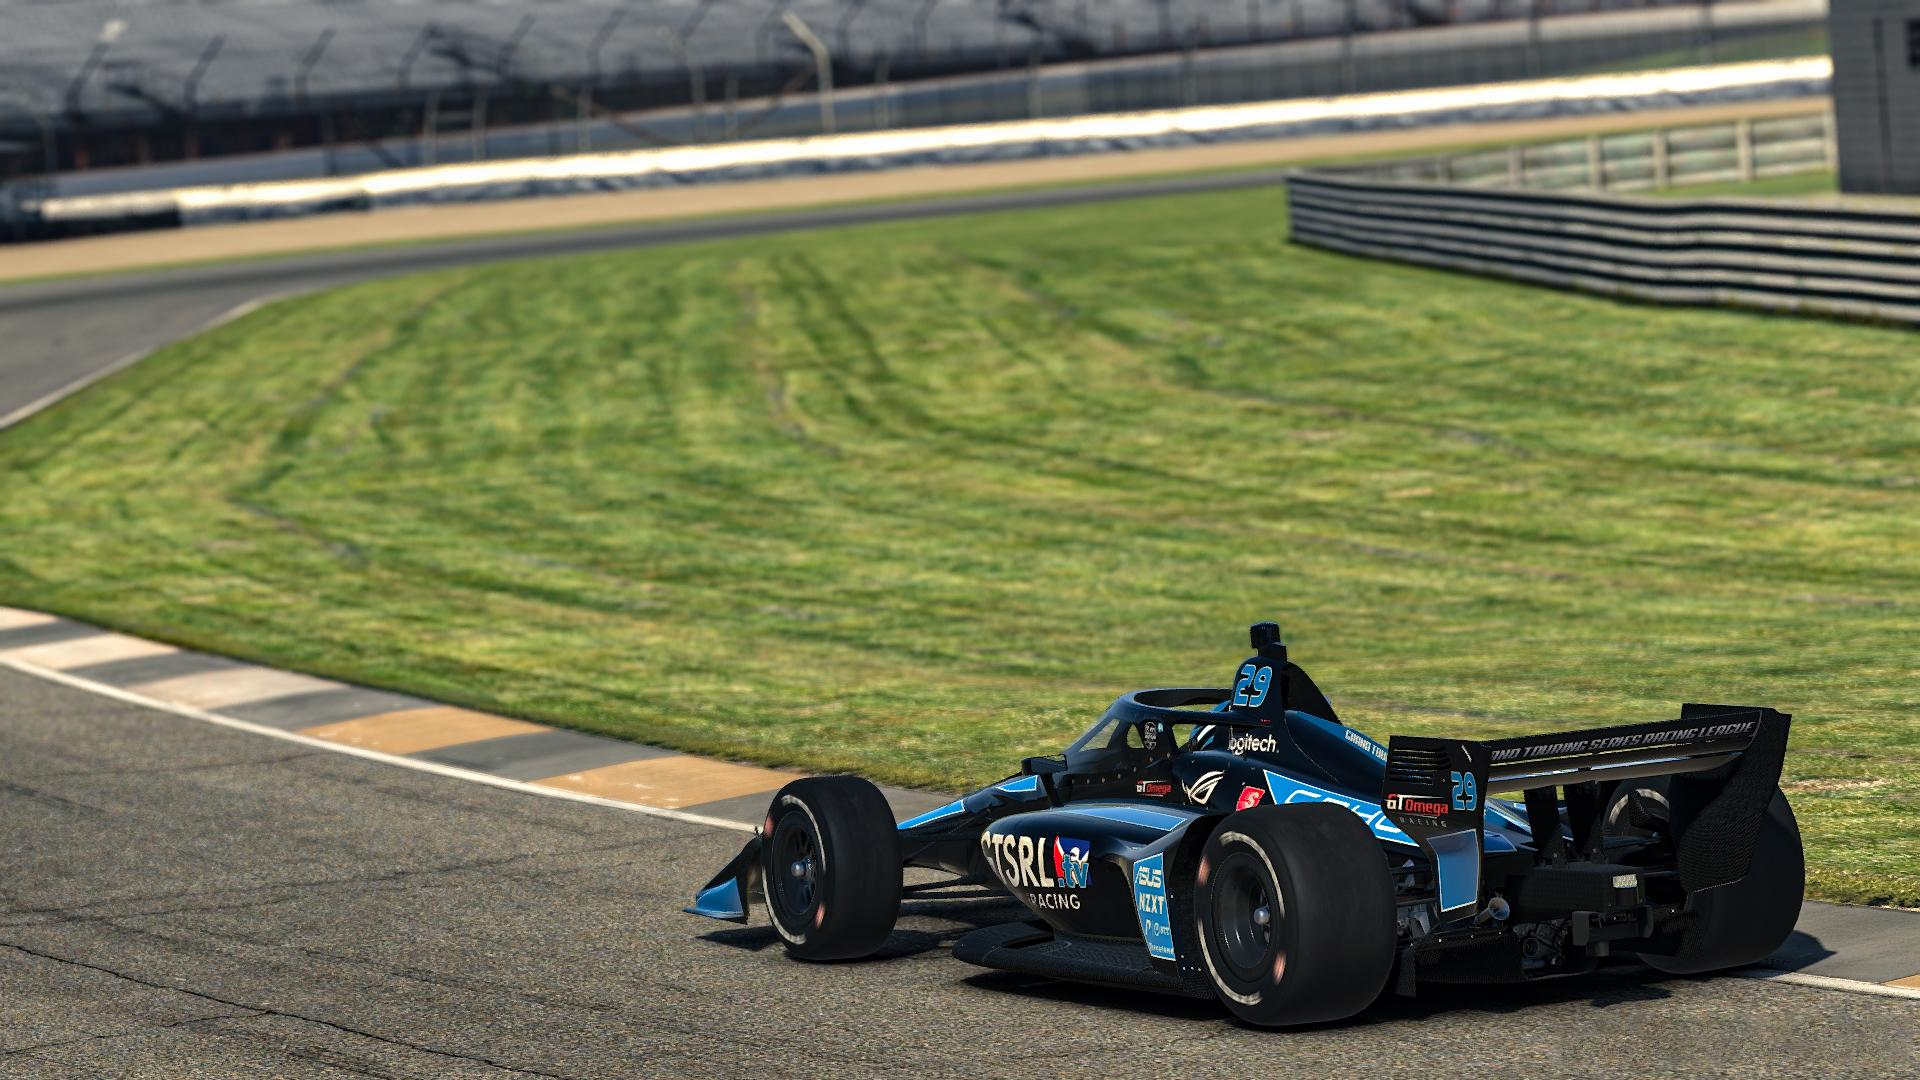 Preview of GTSRL Dallara IR18 by Vincent W.